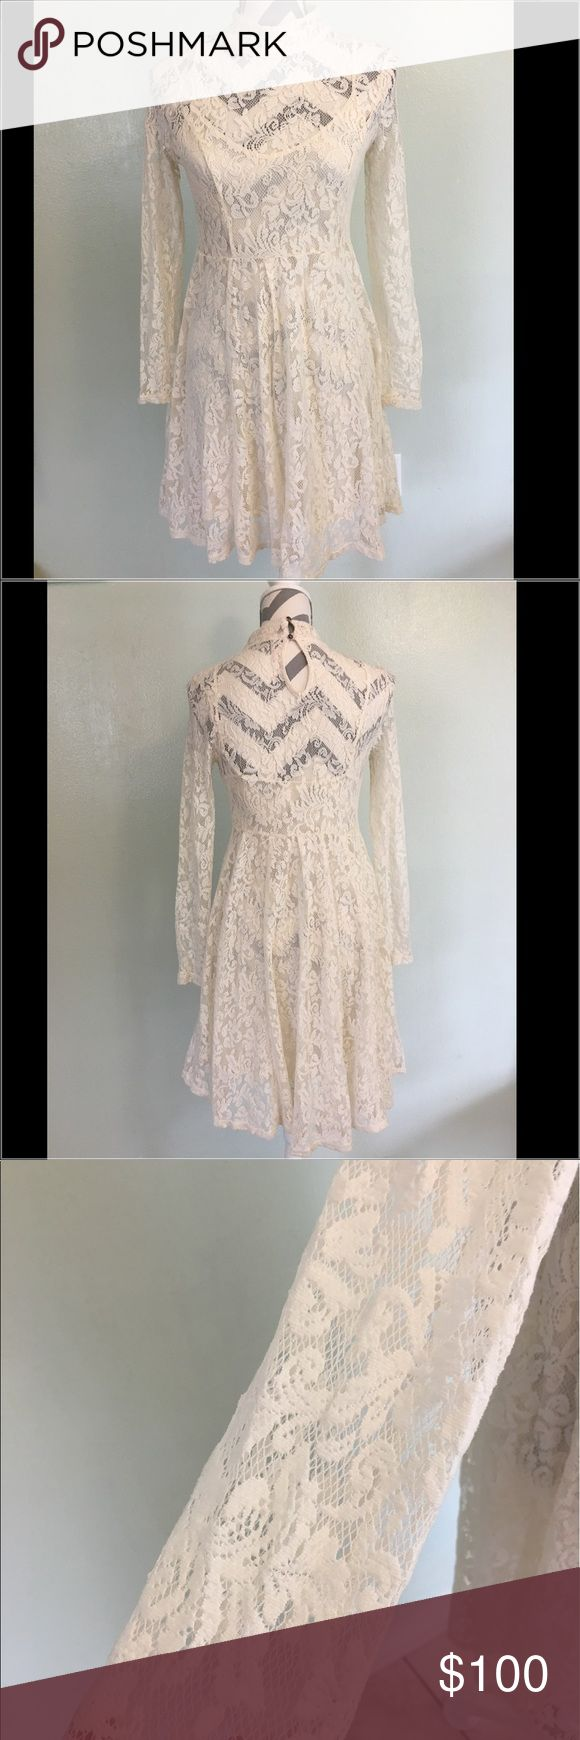 """Free People Lace Dress EUC (worn once).  This lace high neck, long sleeve beauty has and full lining that snaps off if you wanted to add something else underneath giving birth you a versatile look.  Also back has keyhole look with two buttons to close.  As seen in last pic an small ( maybe 1"""") seperation of lace.  Easy fix.          (Pk#37) Free People Dresses"""